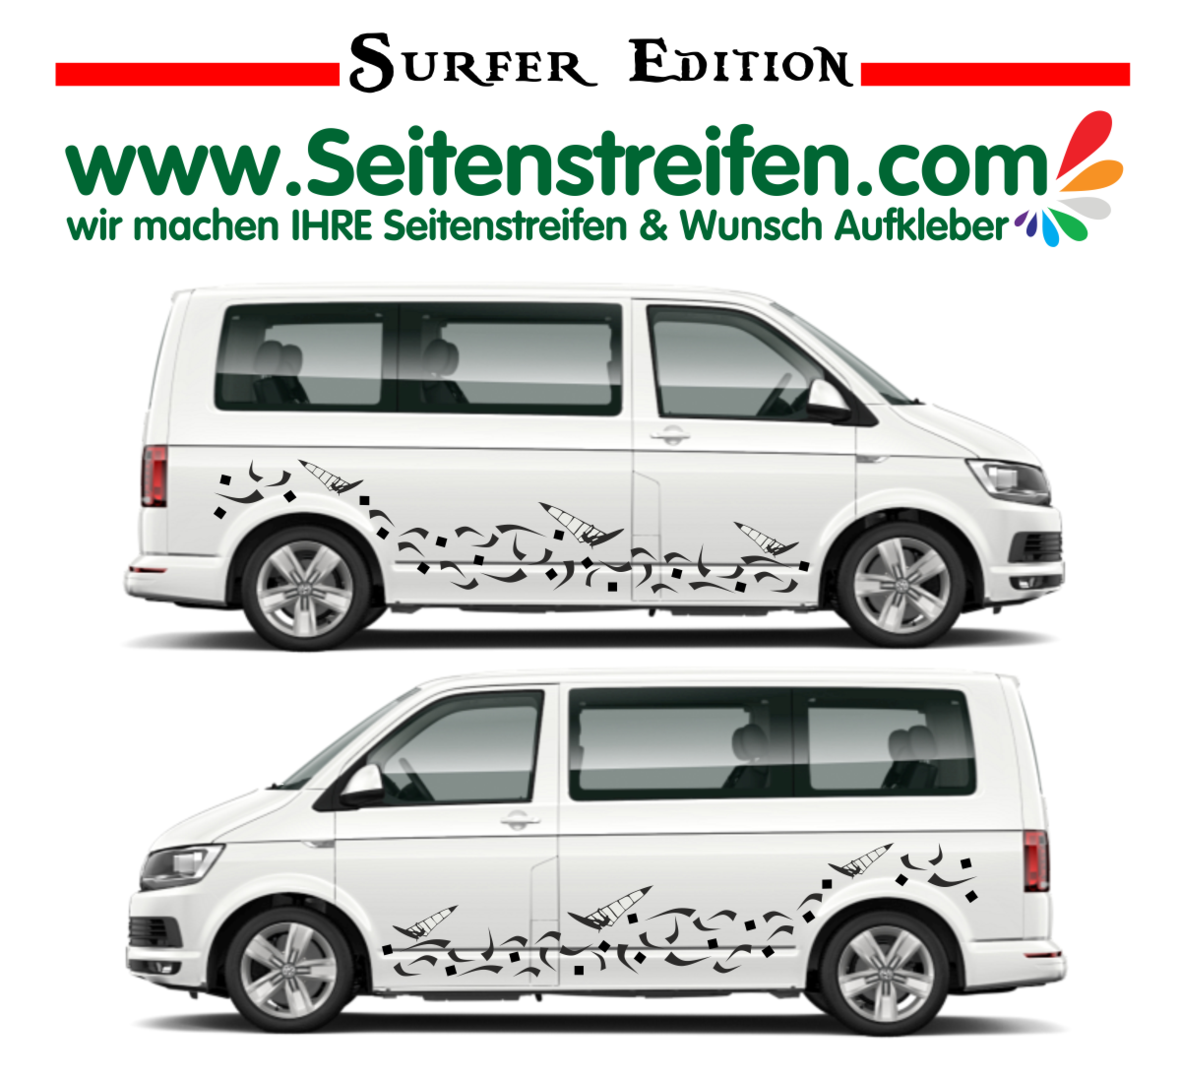 VW Bus T4 T5 T6 - Surf 2018 Edition - Side Stripes Graphics Decals Sticker Kit - Nº U1913